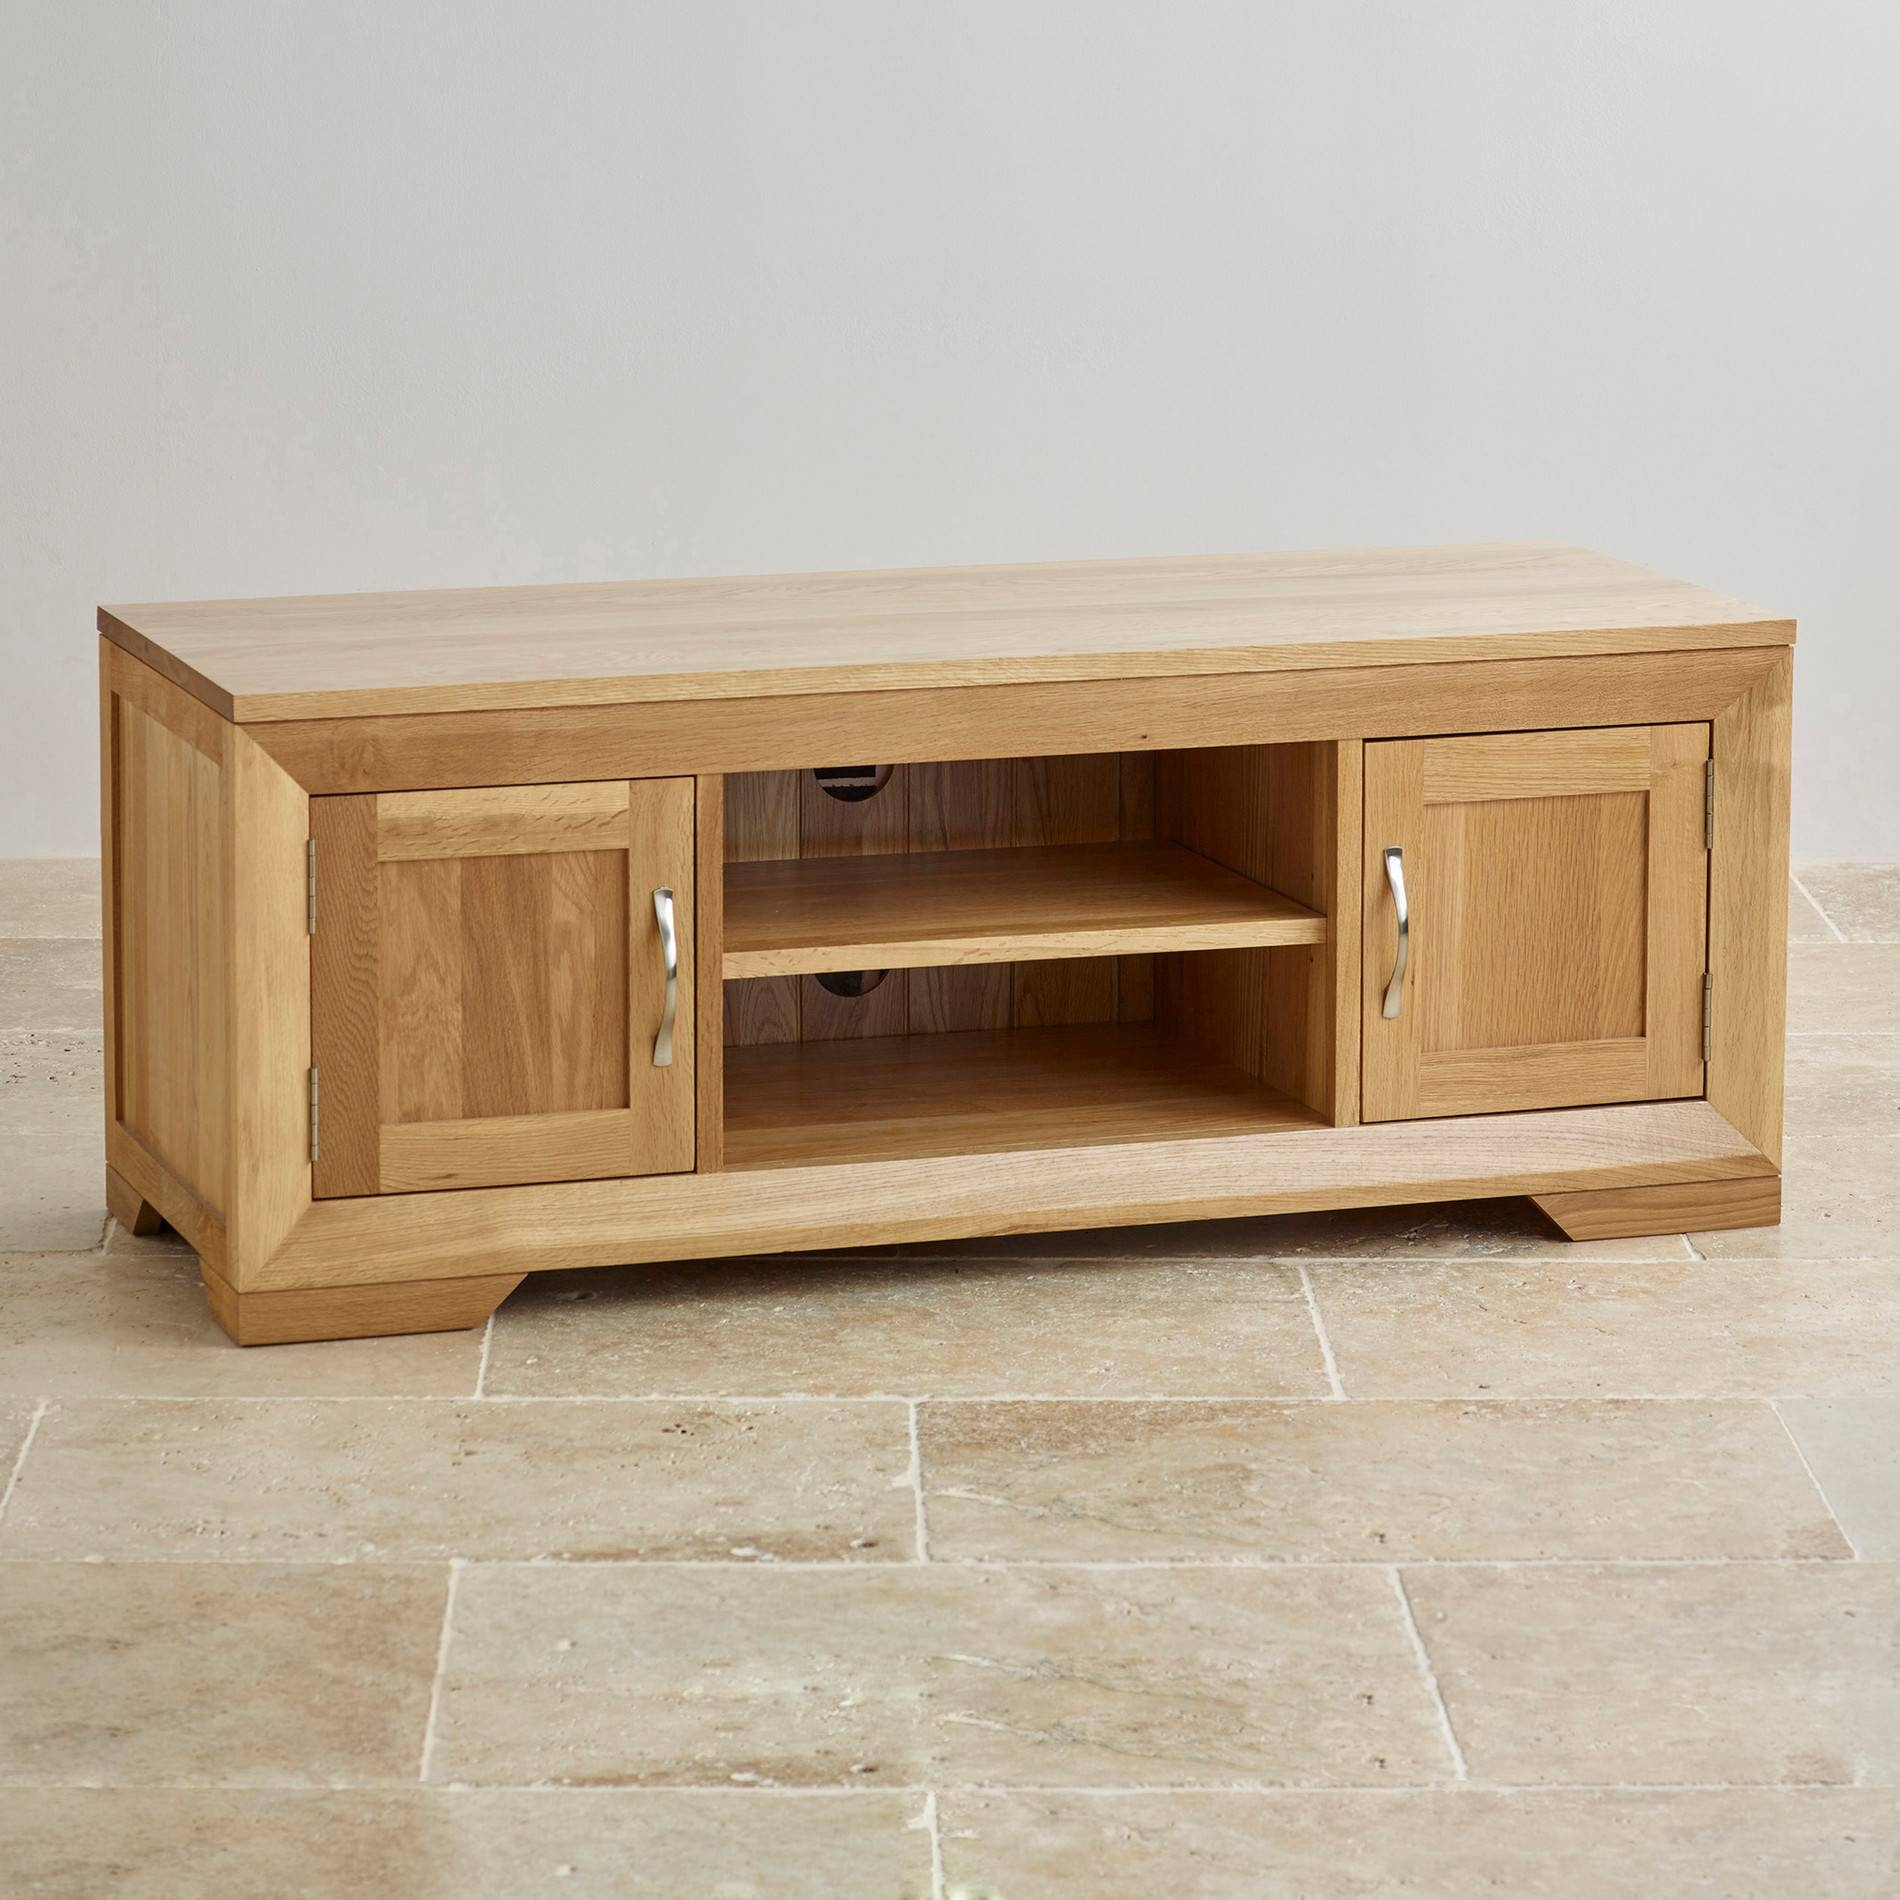 Bevel Natural Solid Oak Widescreen Tv + Dvd Cabinet intended for Solid Oak Tv Cabinets (Image 3 of 15)